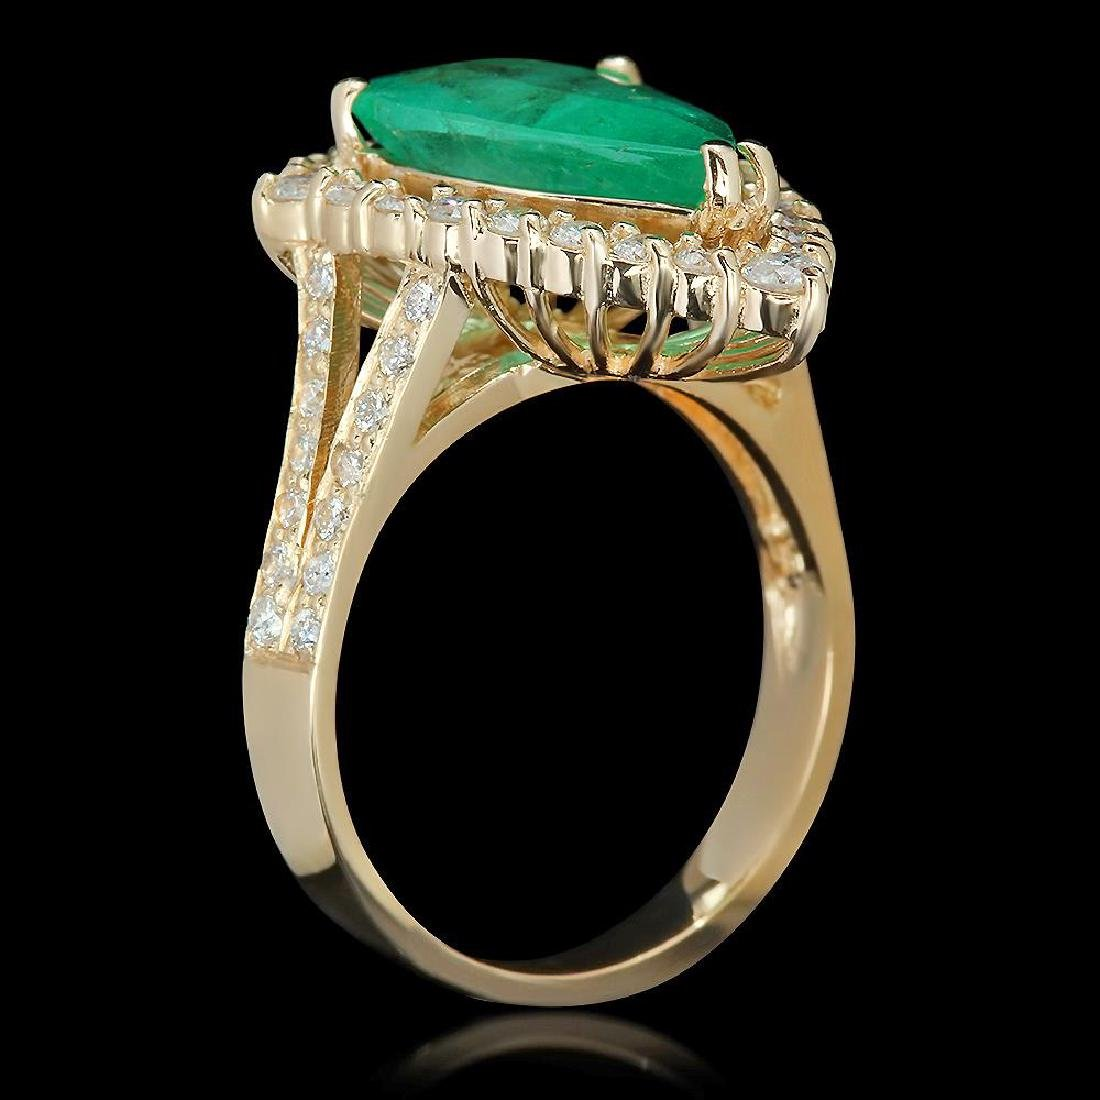 14K Gold 3.82 Emerald 1.05 Diamond Ring - 2